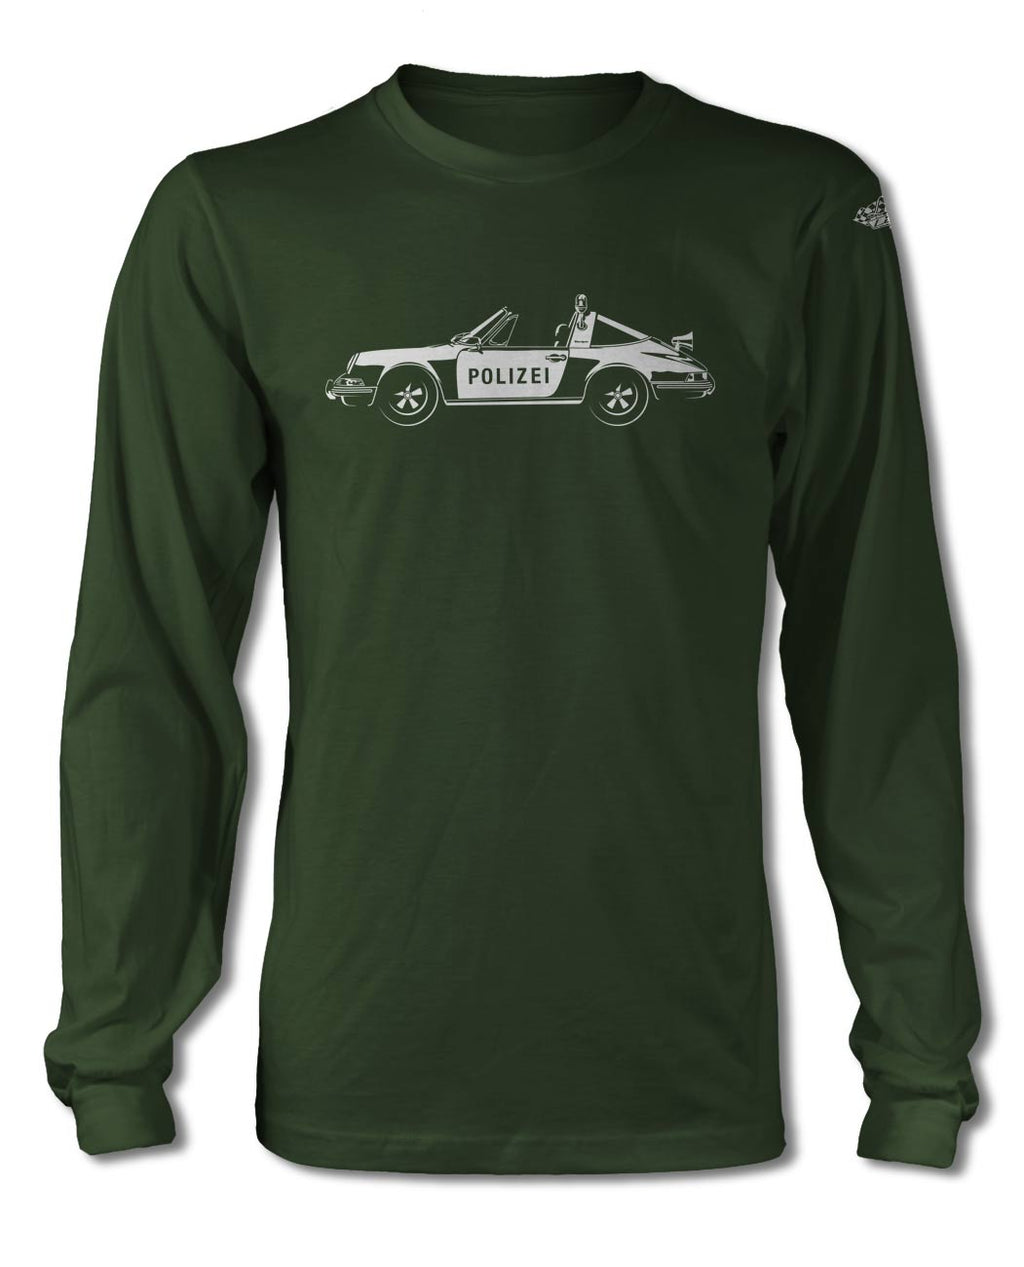 Porsche 911 Targa German Polizei (police) 1971 T-Shirt - Long Sleeves - Side View